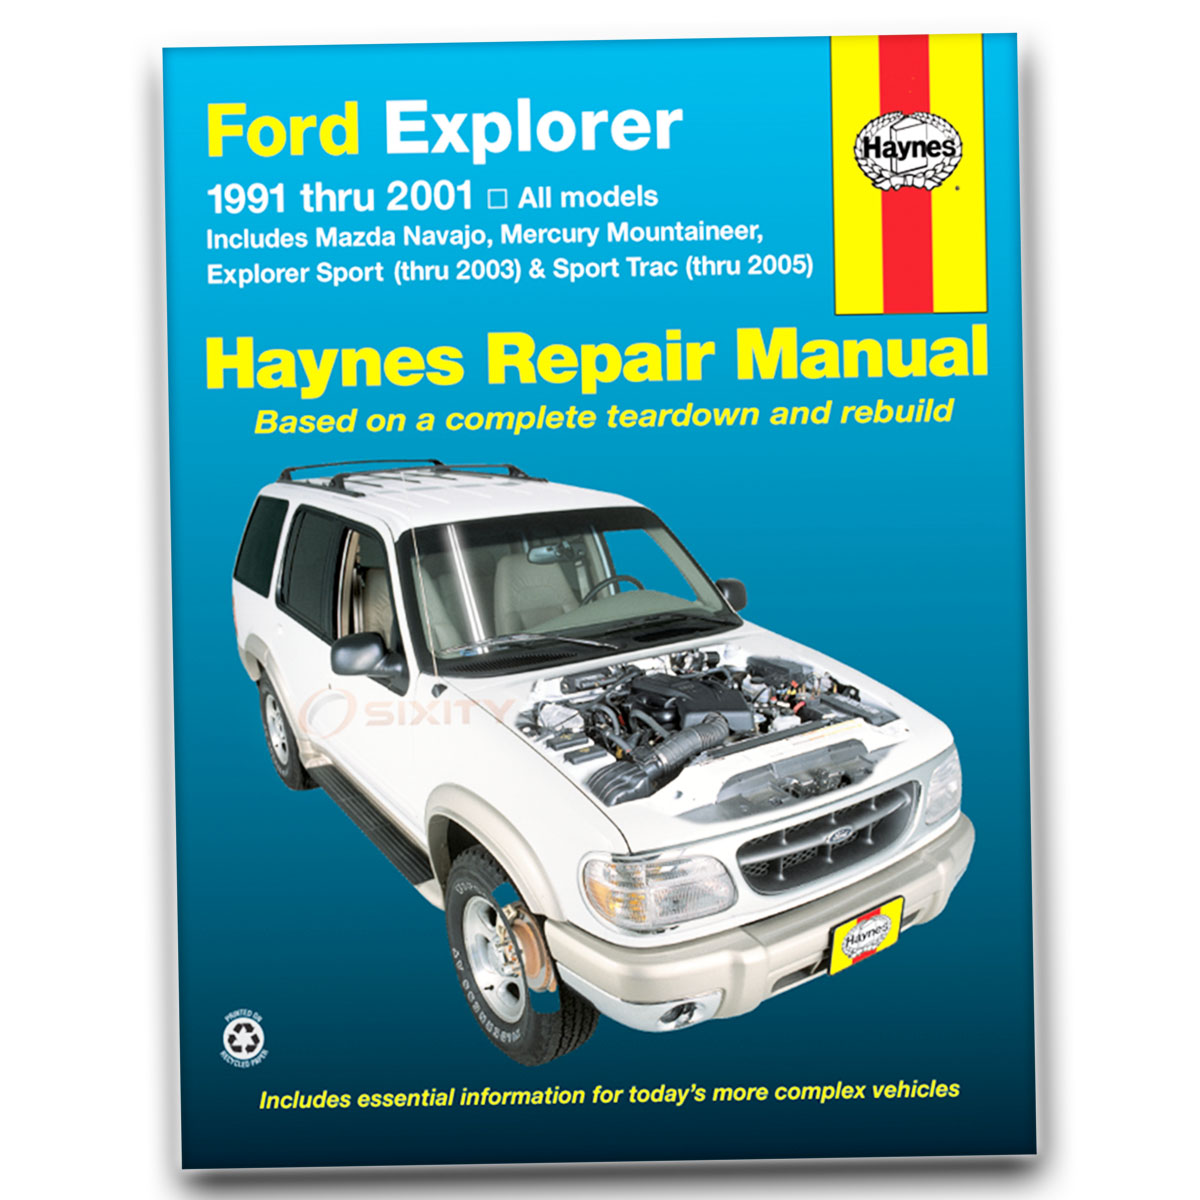 2005 Ford Explorer Sport Trac Wiring Diagrams Manual Diagram 1991 Mazda Navajo Fuse Box Haynes Repair Xls Xlt Adrenalin Base Window